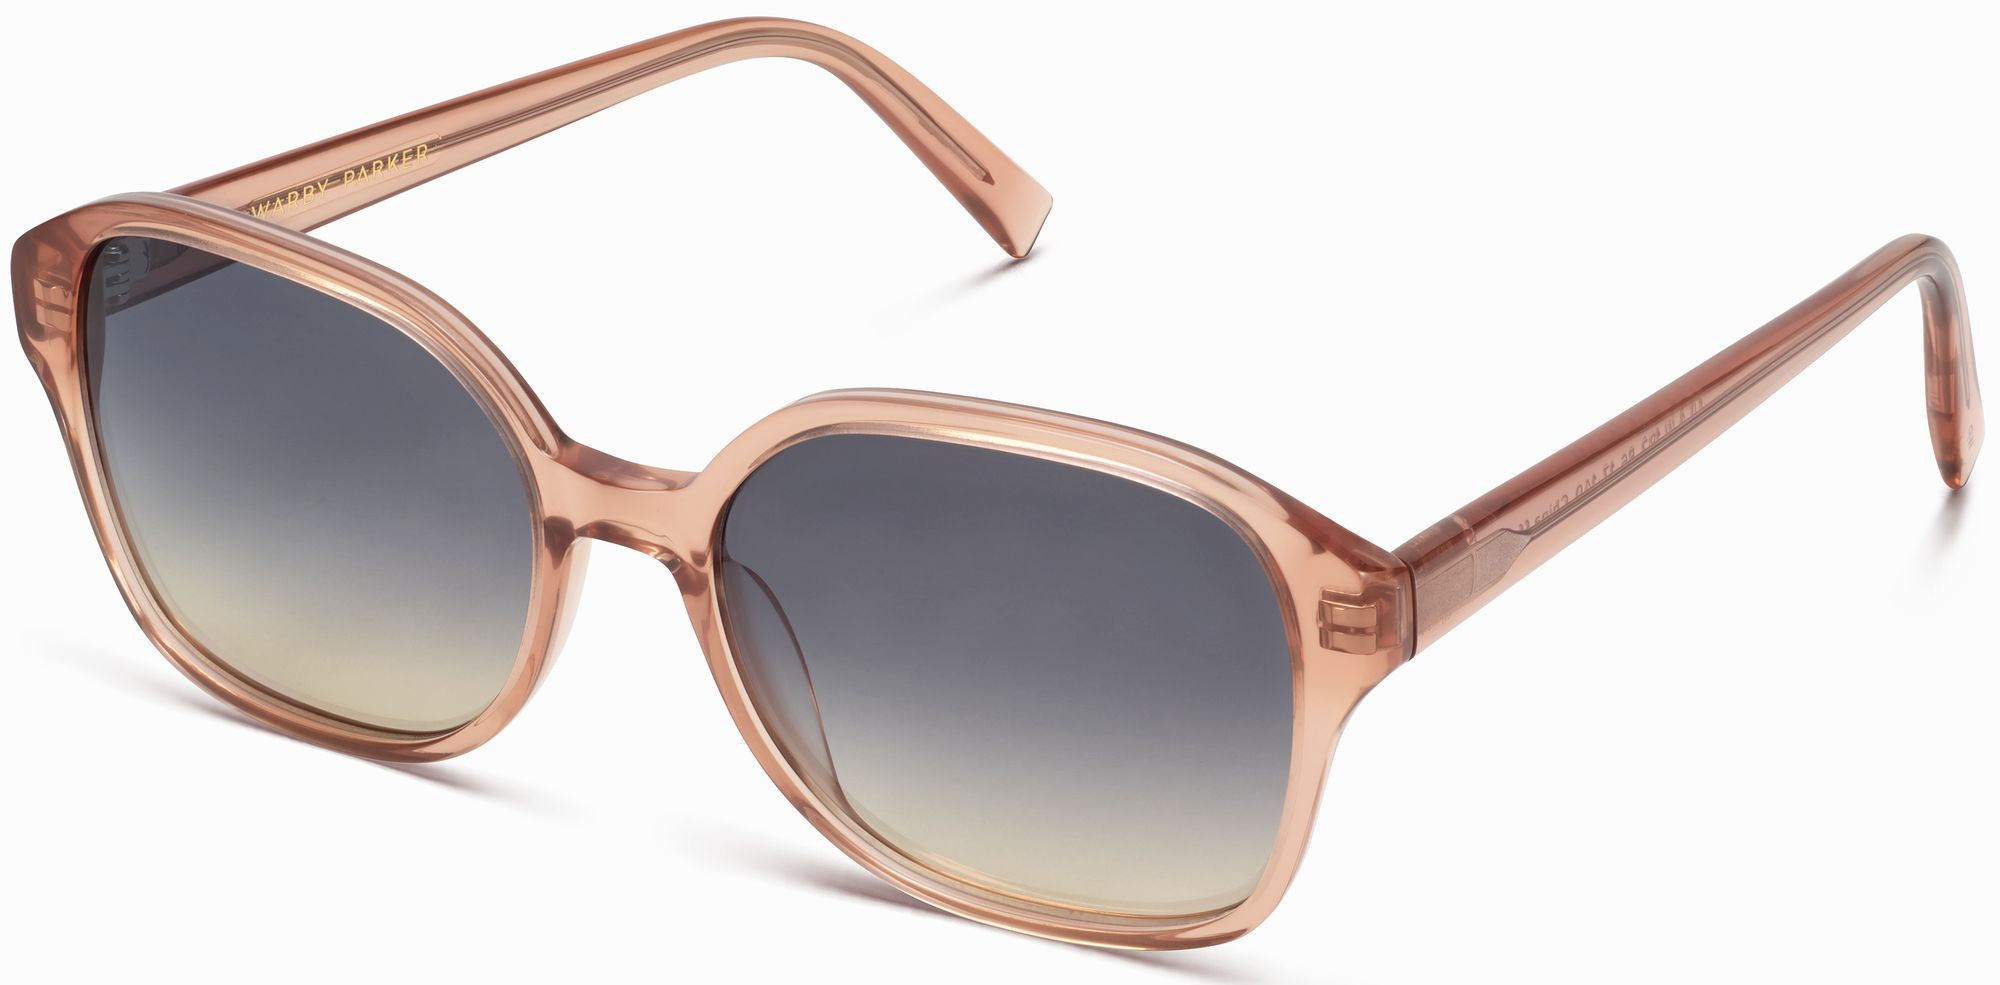 Lila Sunglasses Review - Warby Parker - Nectar - 56-17-140 - Women